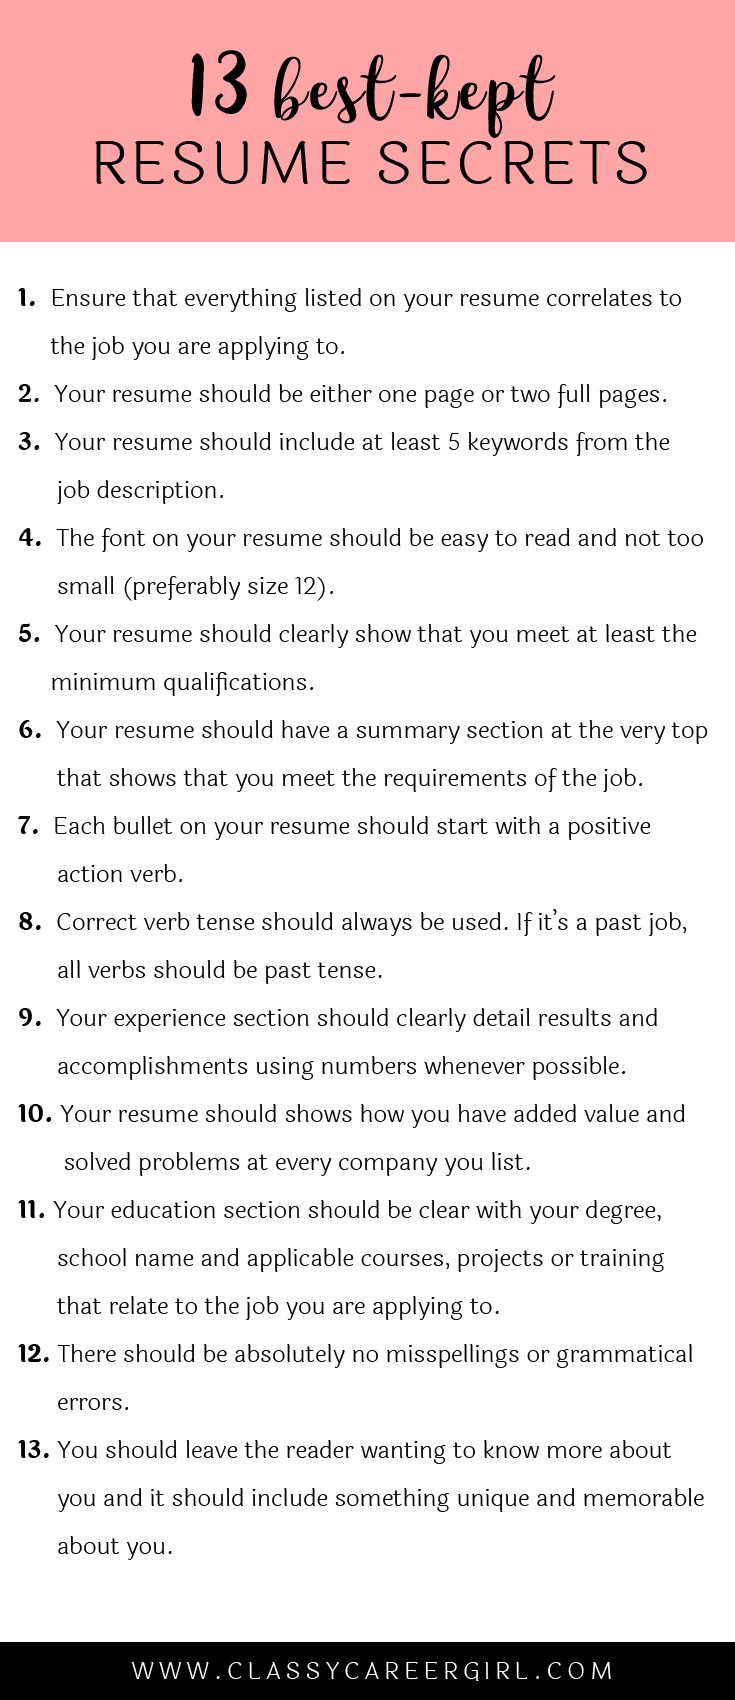 Opposenewapstandardsus  Wonderful  Ideas About Resume On Pinterest  Cv Format Resume Cv And  With Fetching Some Hiring Managers Will Toss Your Resume Out If You Dont Know These  With Endearing Commercial Property Manager Resume Also Restaurant Manager Resume Objective In Addition Sample Resume For Forklift Operator And Email For Sending Resume As Well As How To Make A Cover Letter And Resume Additionally Education Resume Templates From Pinterestcom With Opposenewapstandardsus  Fetching  Ideas About Resume On Pinterest  Cv Format Resume Cv And  With Endearing Some Hiring Managers Will Toss Your Resume Out If You Dont Know These  And Wonderful Commercial Property Manager Resume Also Restaurant Manager Resume Objective In Addition Sample Resume For Forklift Operator From Pinterestcom